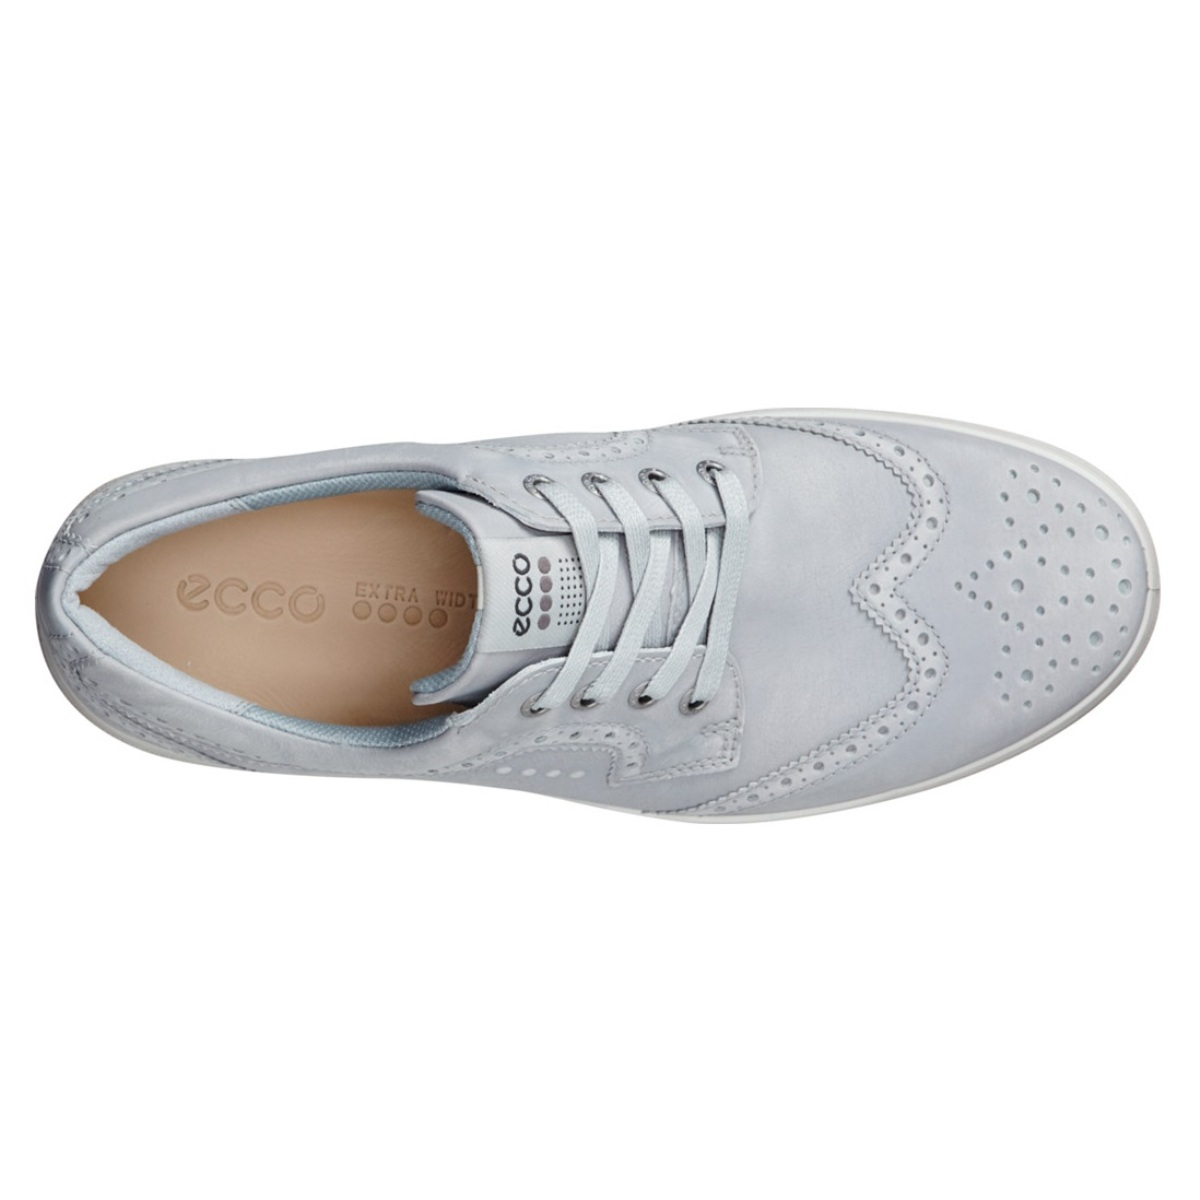 Ecco-2016-Mens-Casual-Hybrid-Hydromax-Waterproof-Leather-SL-Golf-Shoes-152014